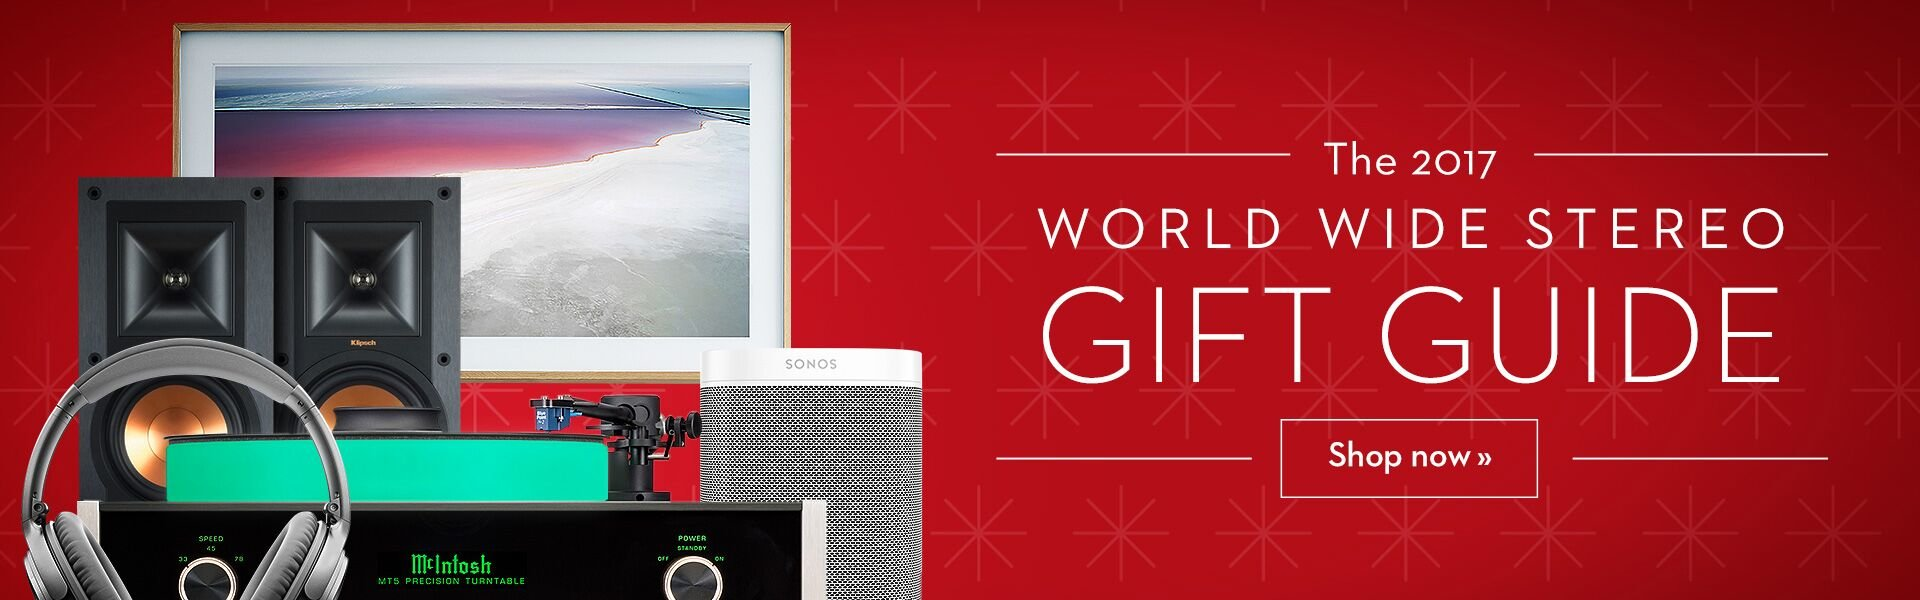 2017 World Wide Stereo Holiday Gift Guide